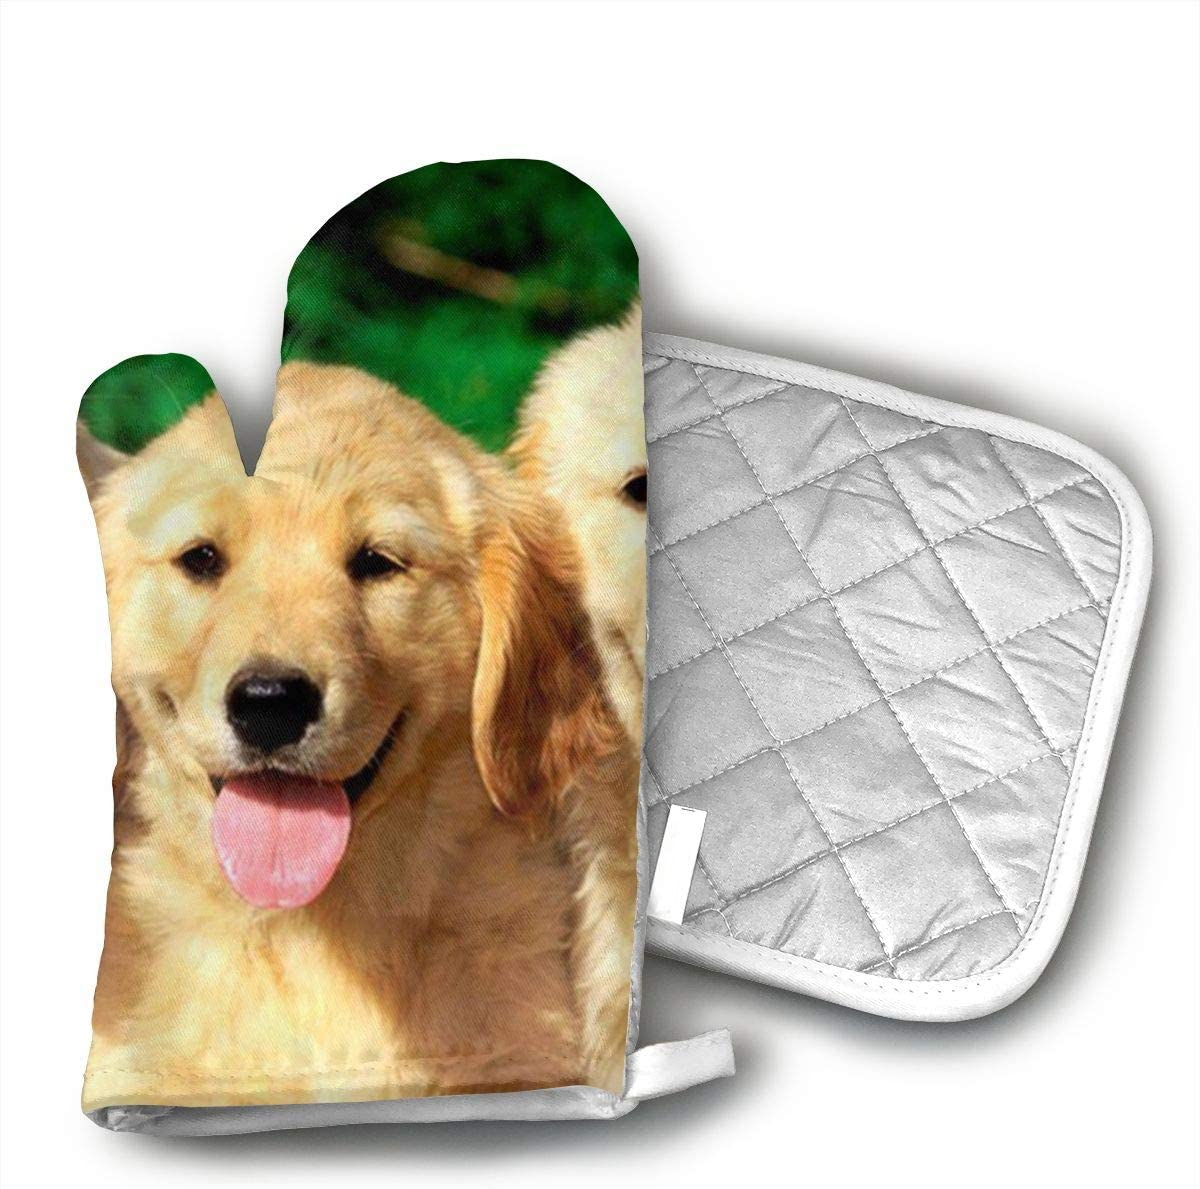 Wiqo9 Golden Retriever with Smiling Face Customized Dog Oven Mitts and Pot Holders Kitchen Mitten Cooking Gloves,Cooking, Baking, BBQ.